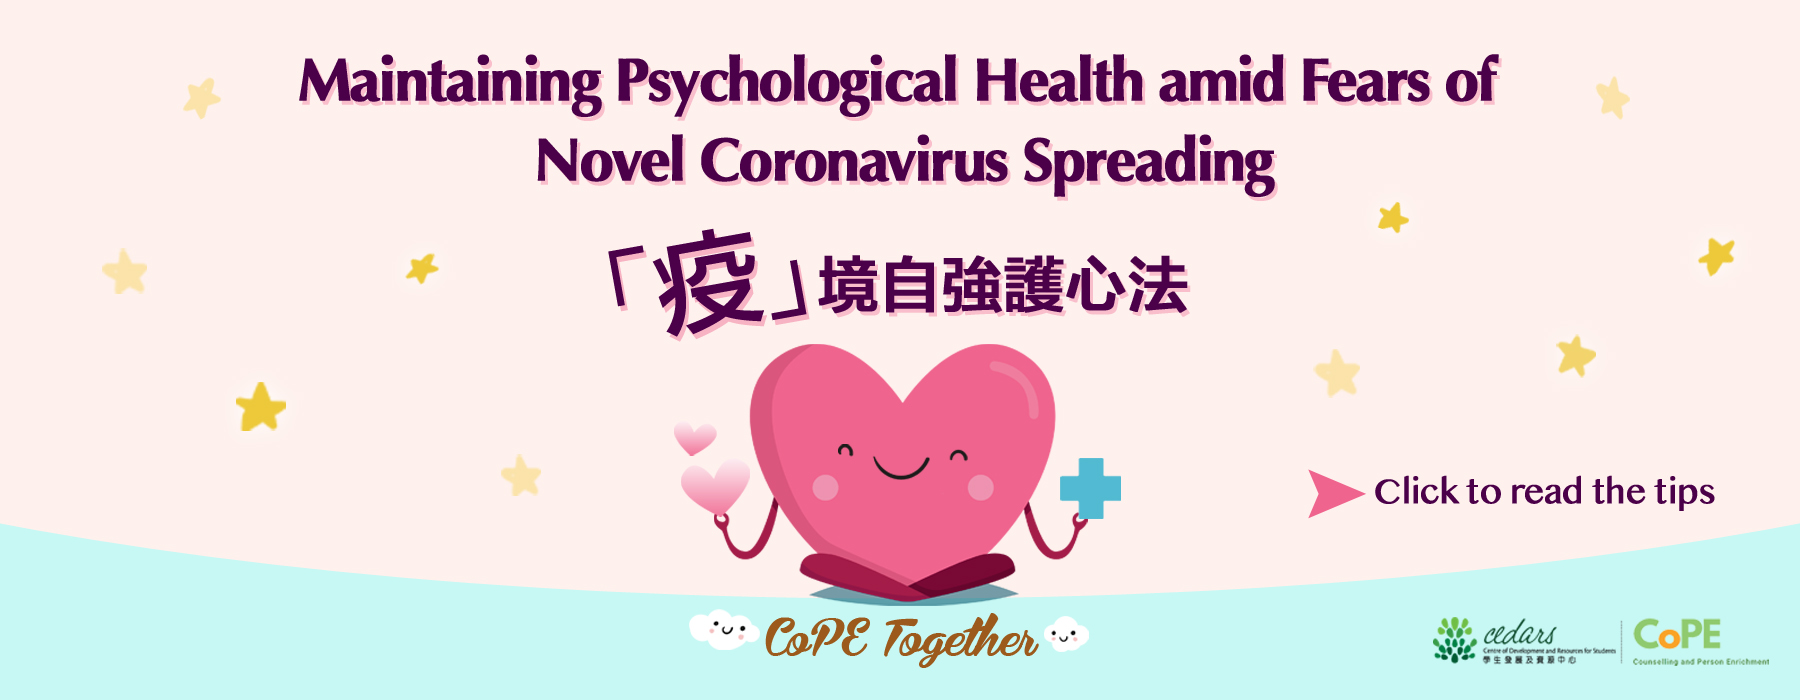 Maintaining Psychological Health amid Fears of Novel Coronavirus Spreading